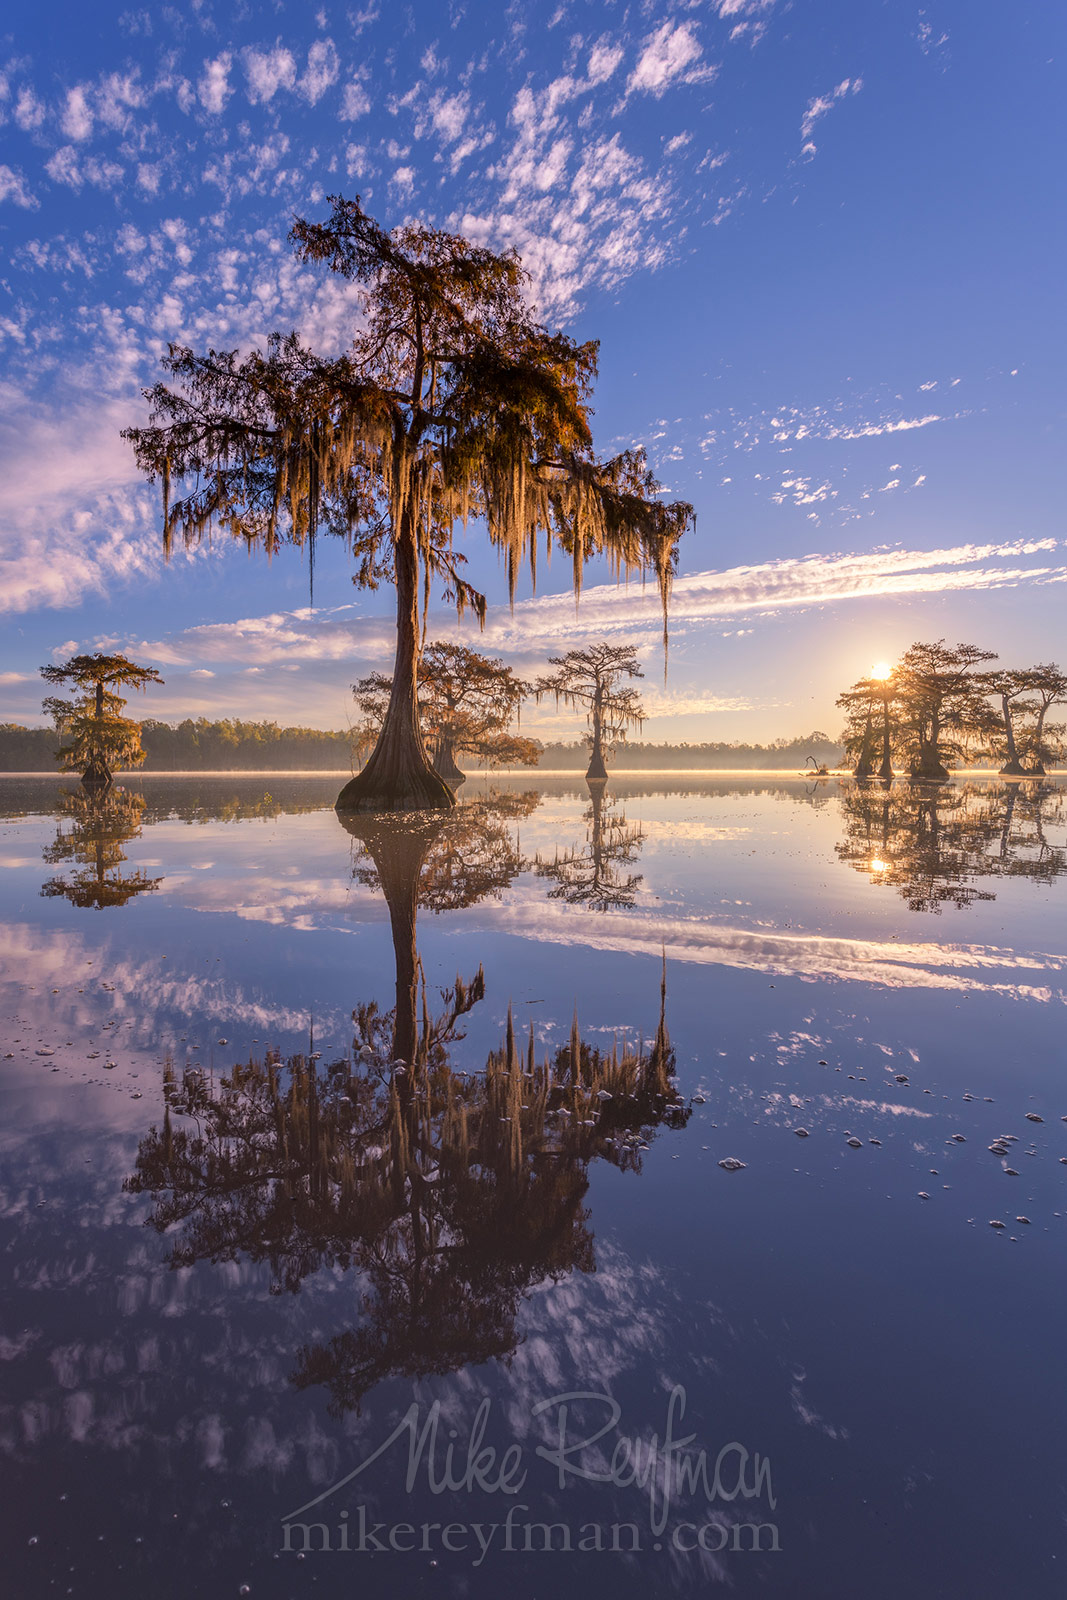 Bald Cypress trees covered in Spanish Moss at sunrise. Lake Fausse, Louisiana, US 082_LT1_50A4470.jpg - Bold Cypress and Tupelo Trees in the swamps of Atchafalaya River Basin. Caddo, Martin and Fousse Lakes. Texas/Louisiana, USA. - Mike Reyfman Photography